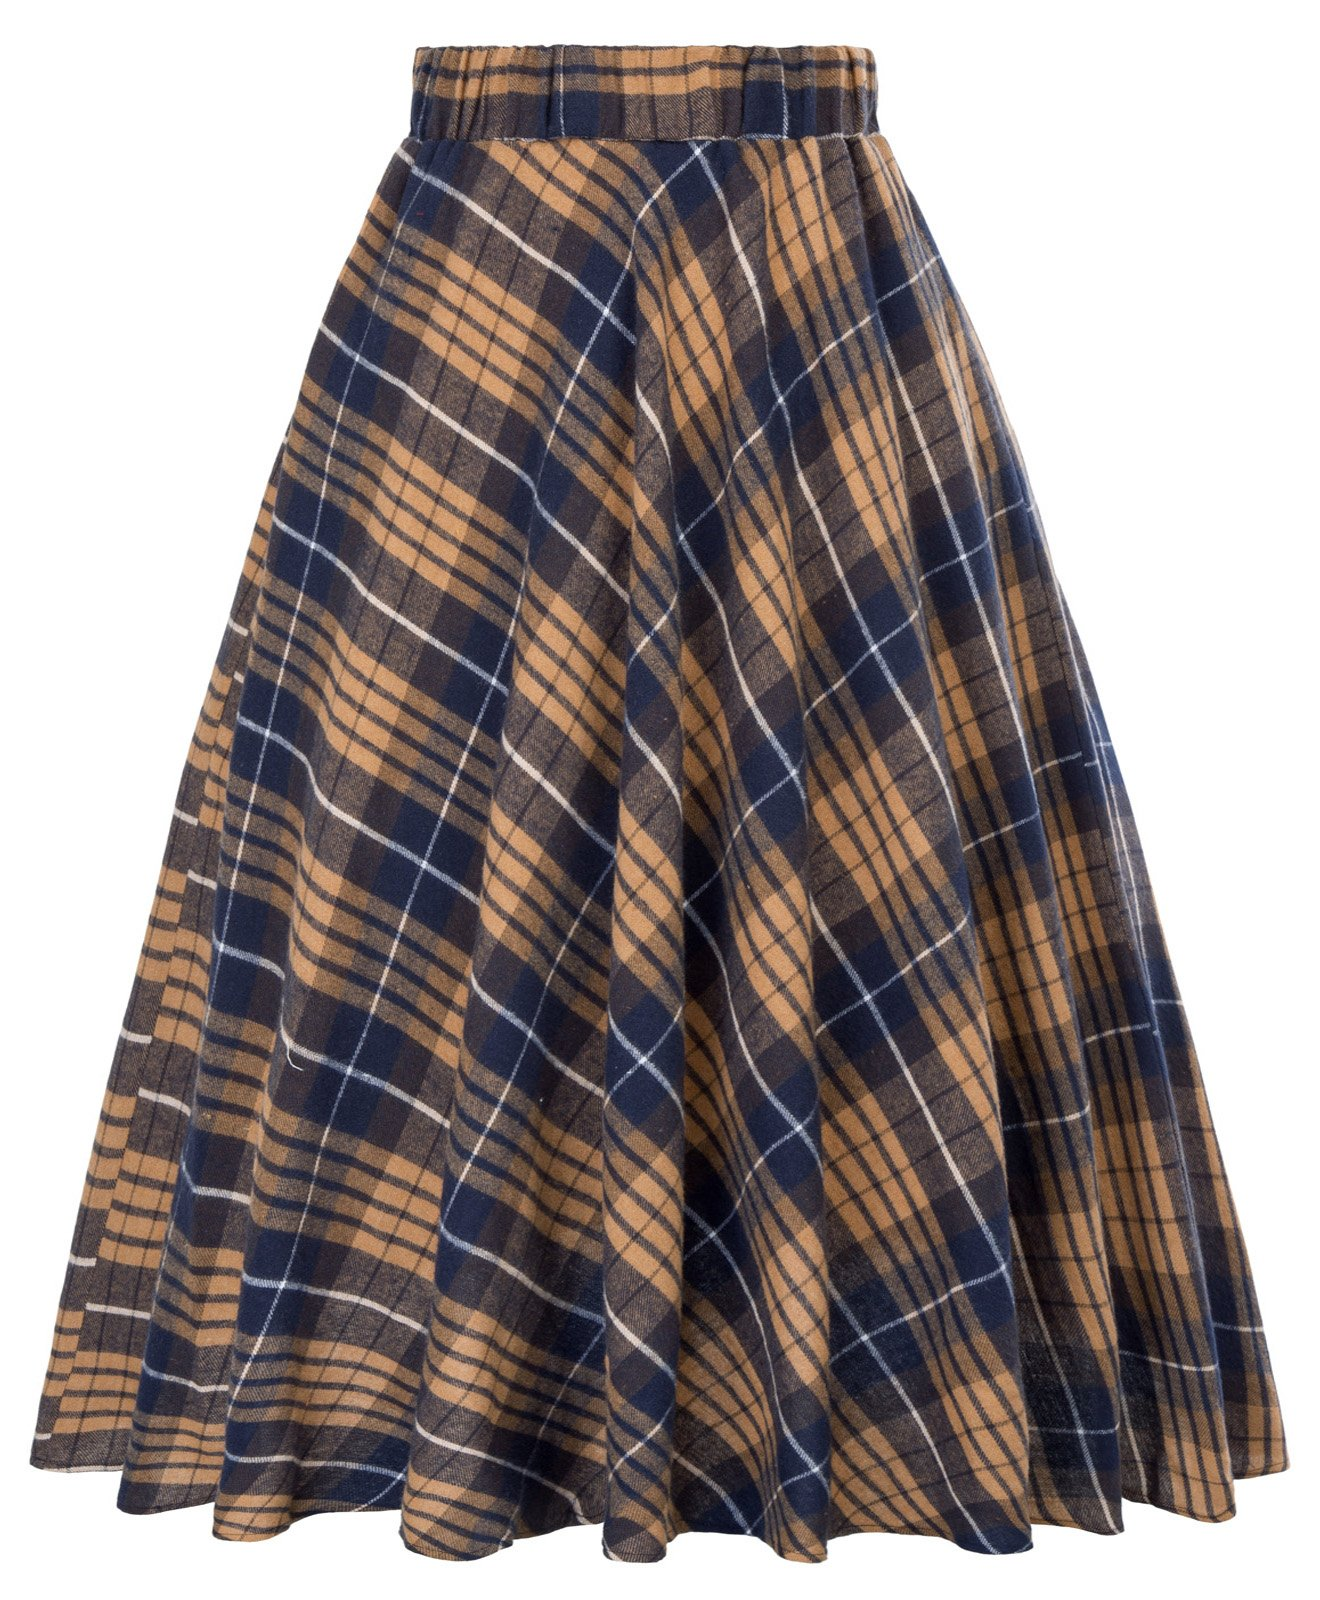 Flared Pleated Plaid A-Line Midi Skirt For Winter Size XL KK495-4